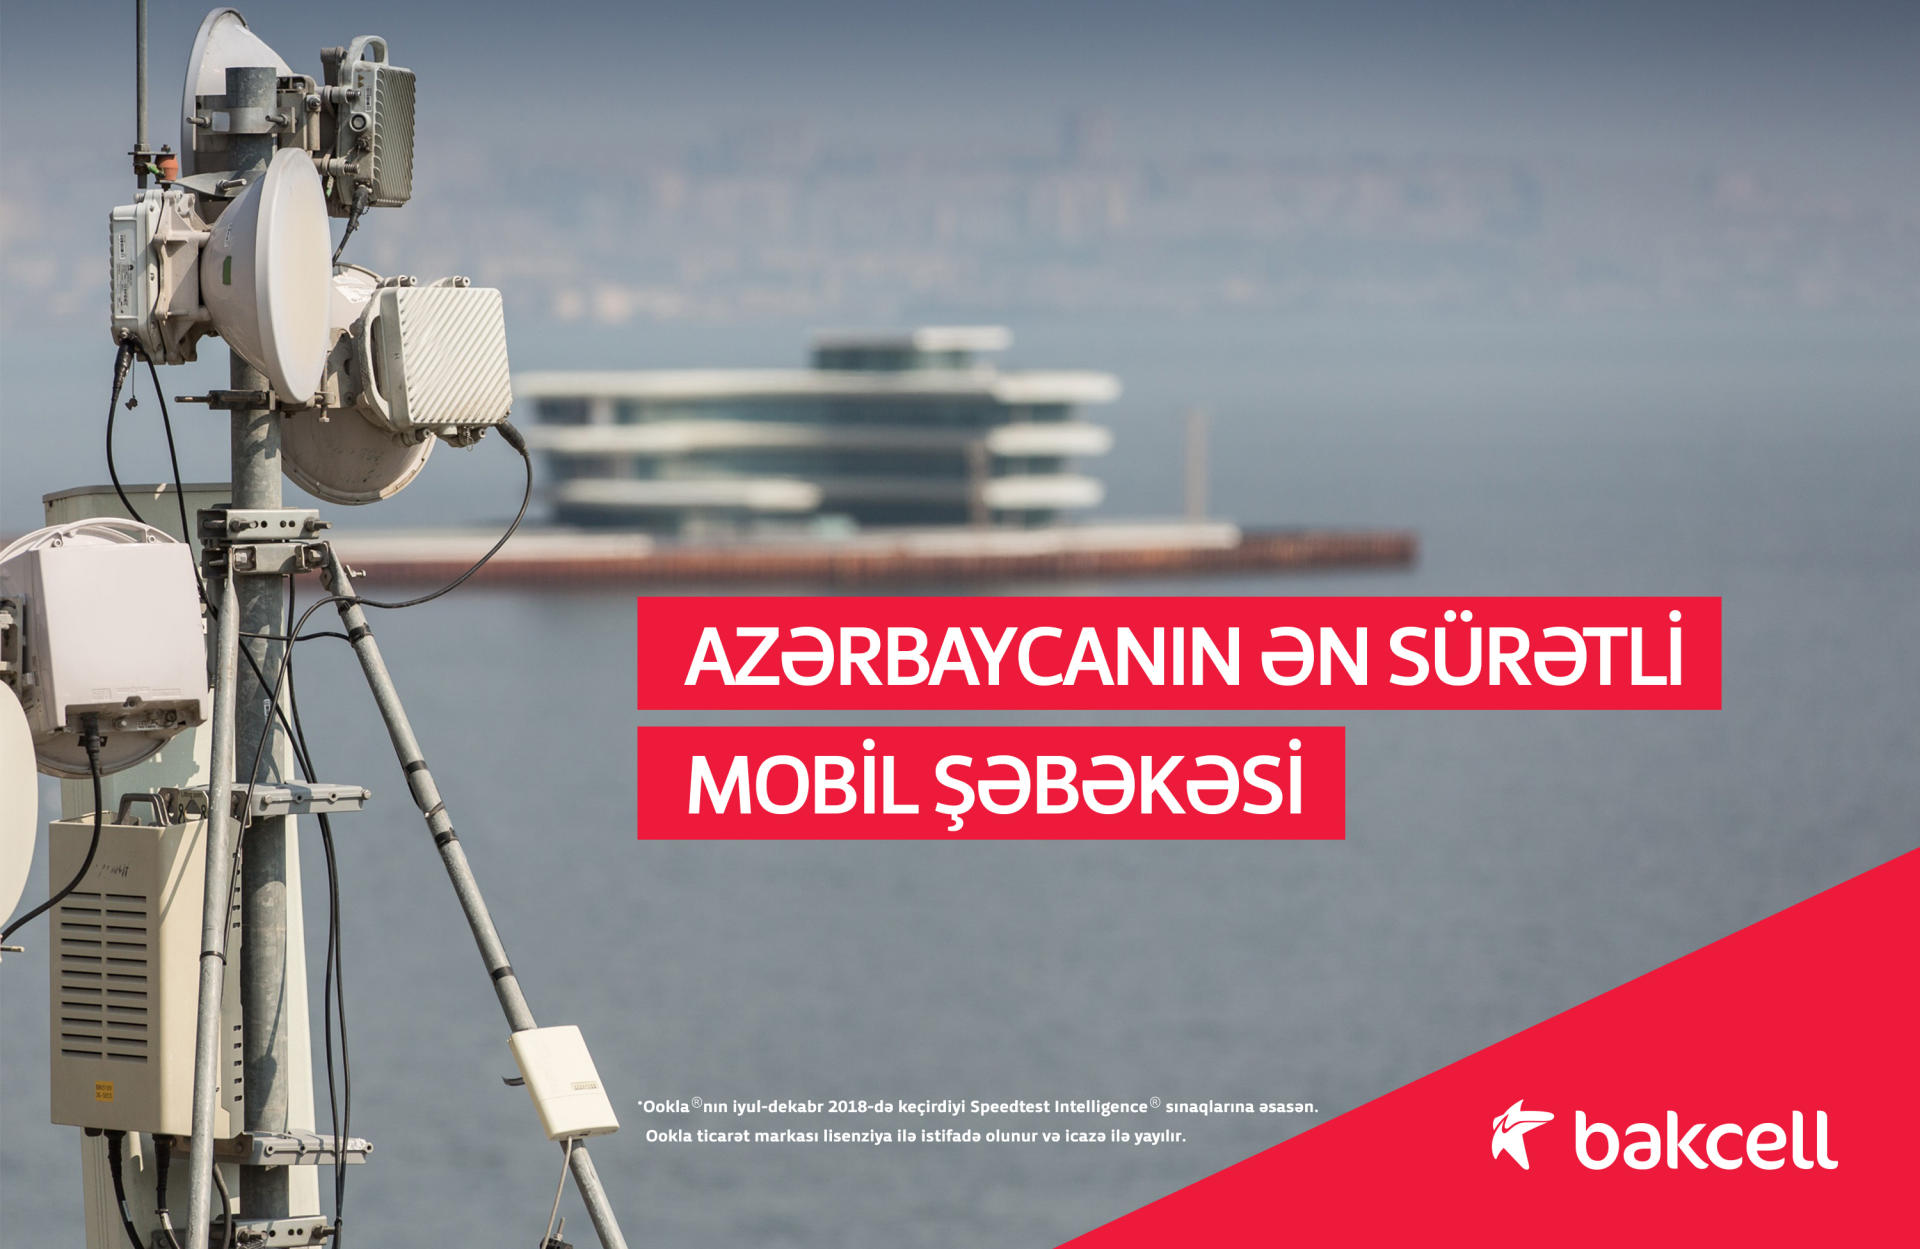 Bakcell implements fastest & largest LTE rollout in Azerbaijan